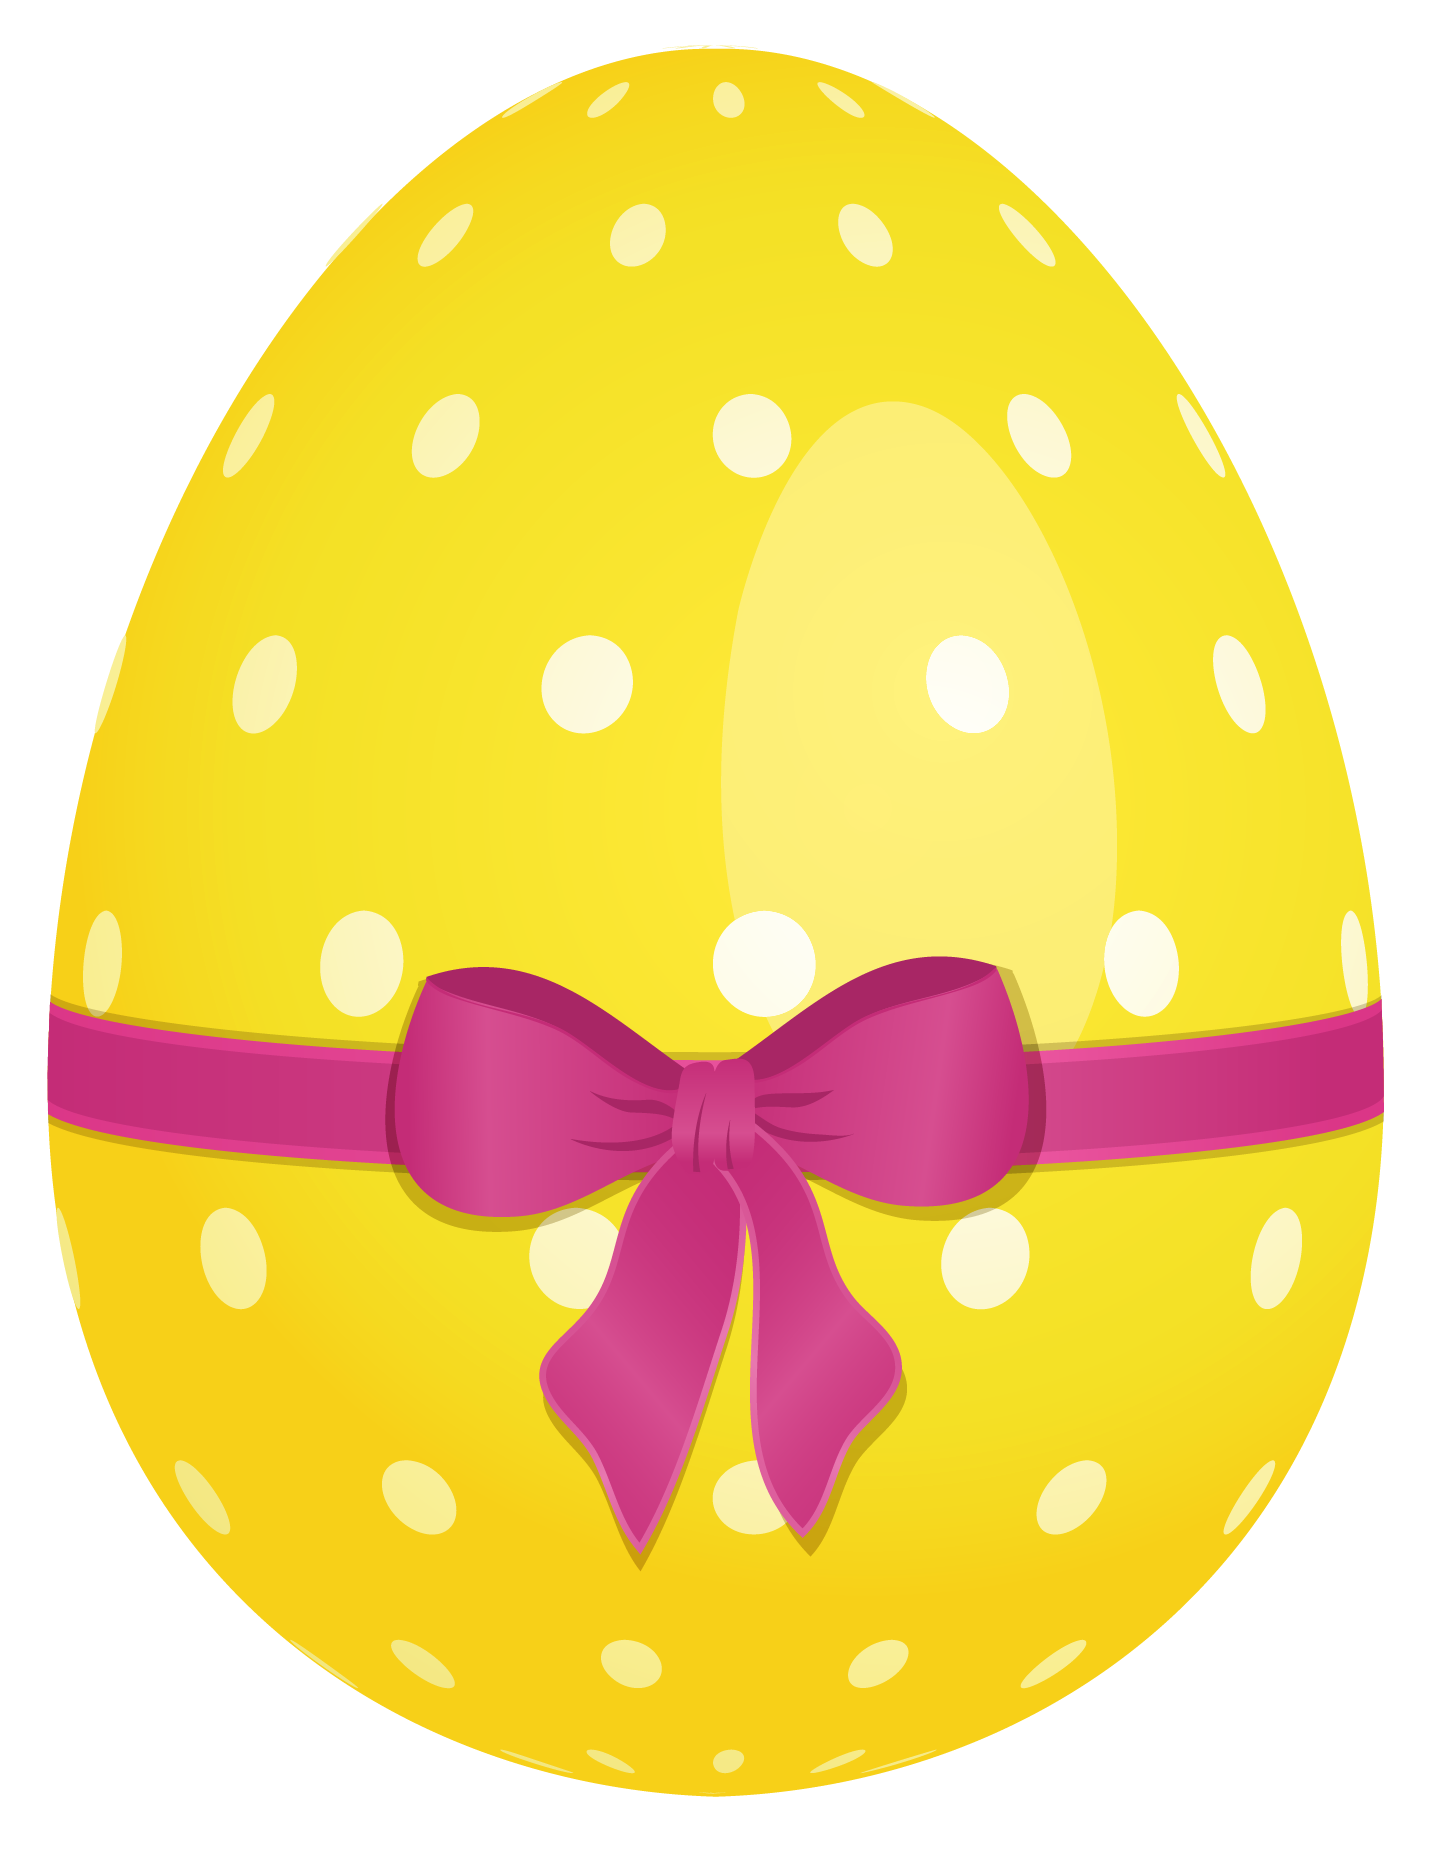 Easter Bunny Egg hunt Clip art.